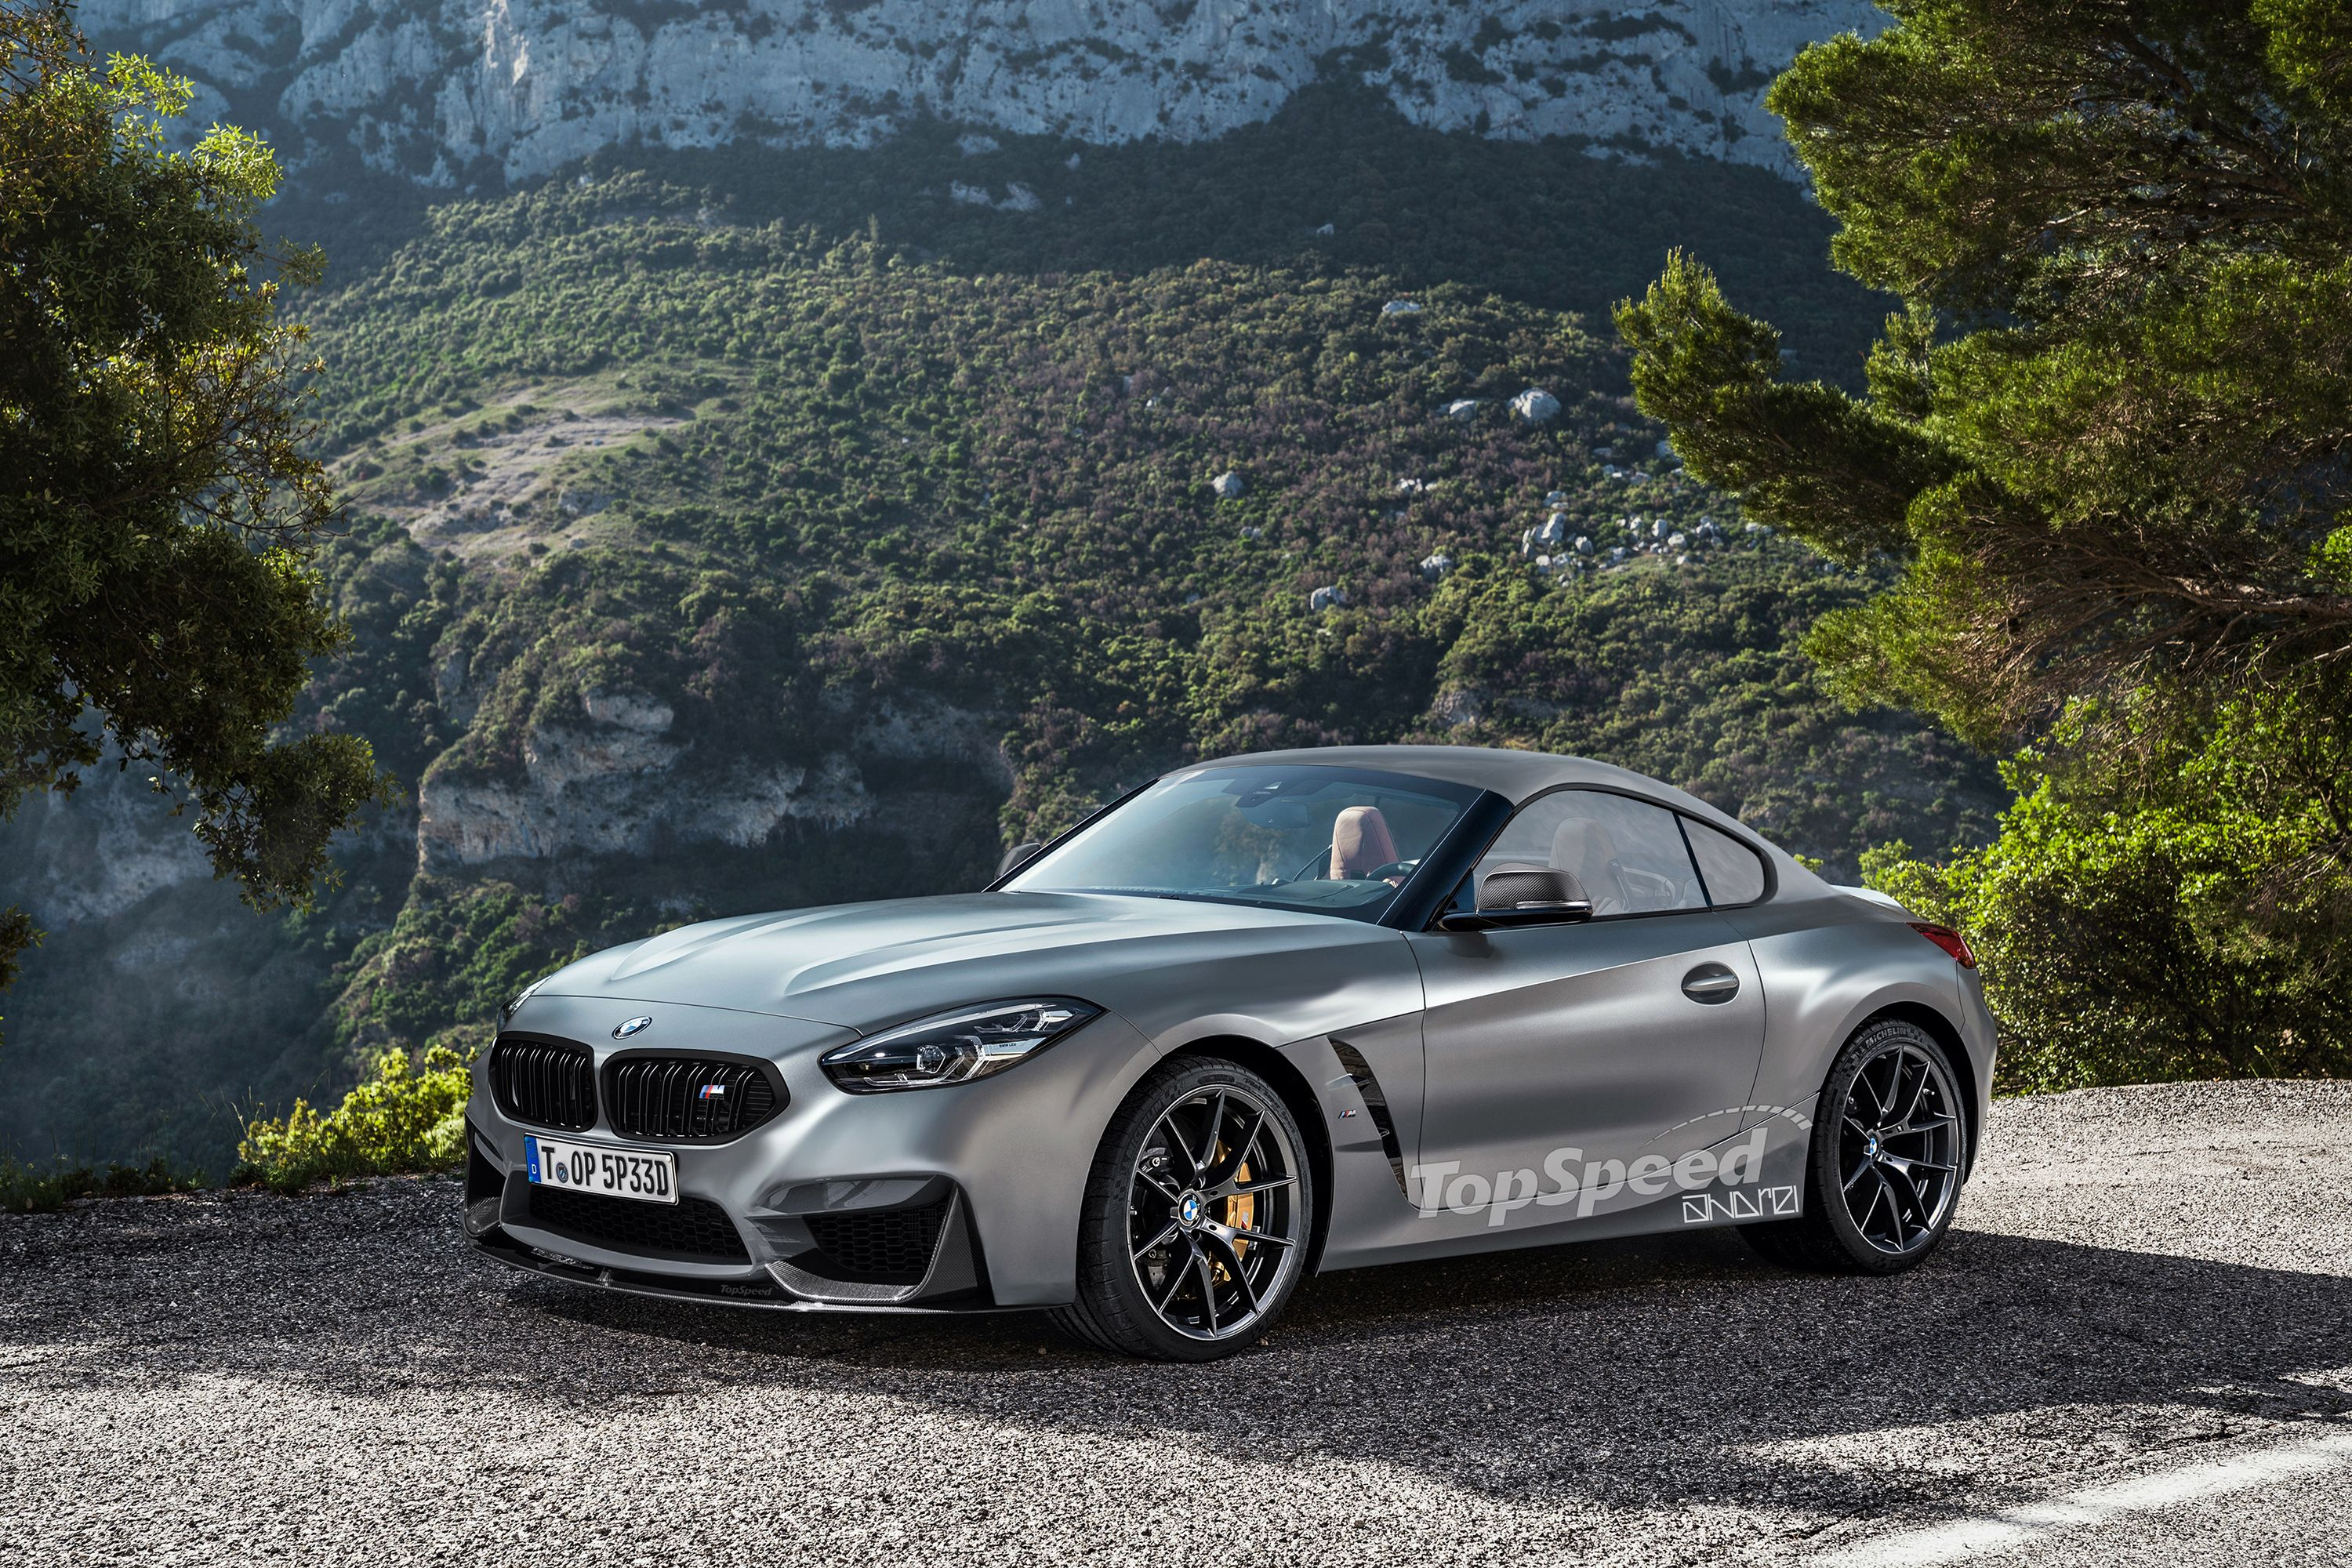 2019 Bmw Z4 M Coupe Could Look Like This Cars Pinterest Bmw